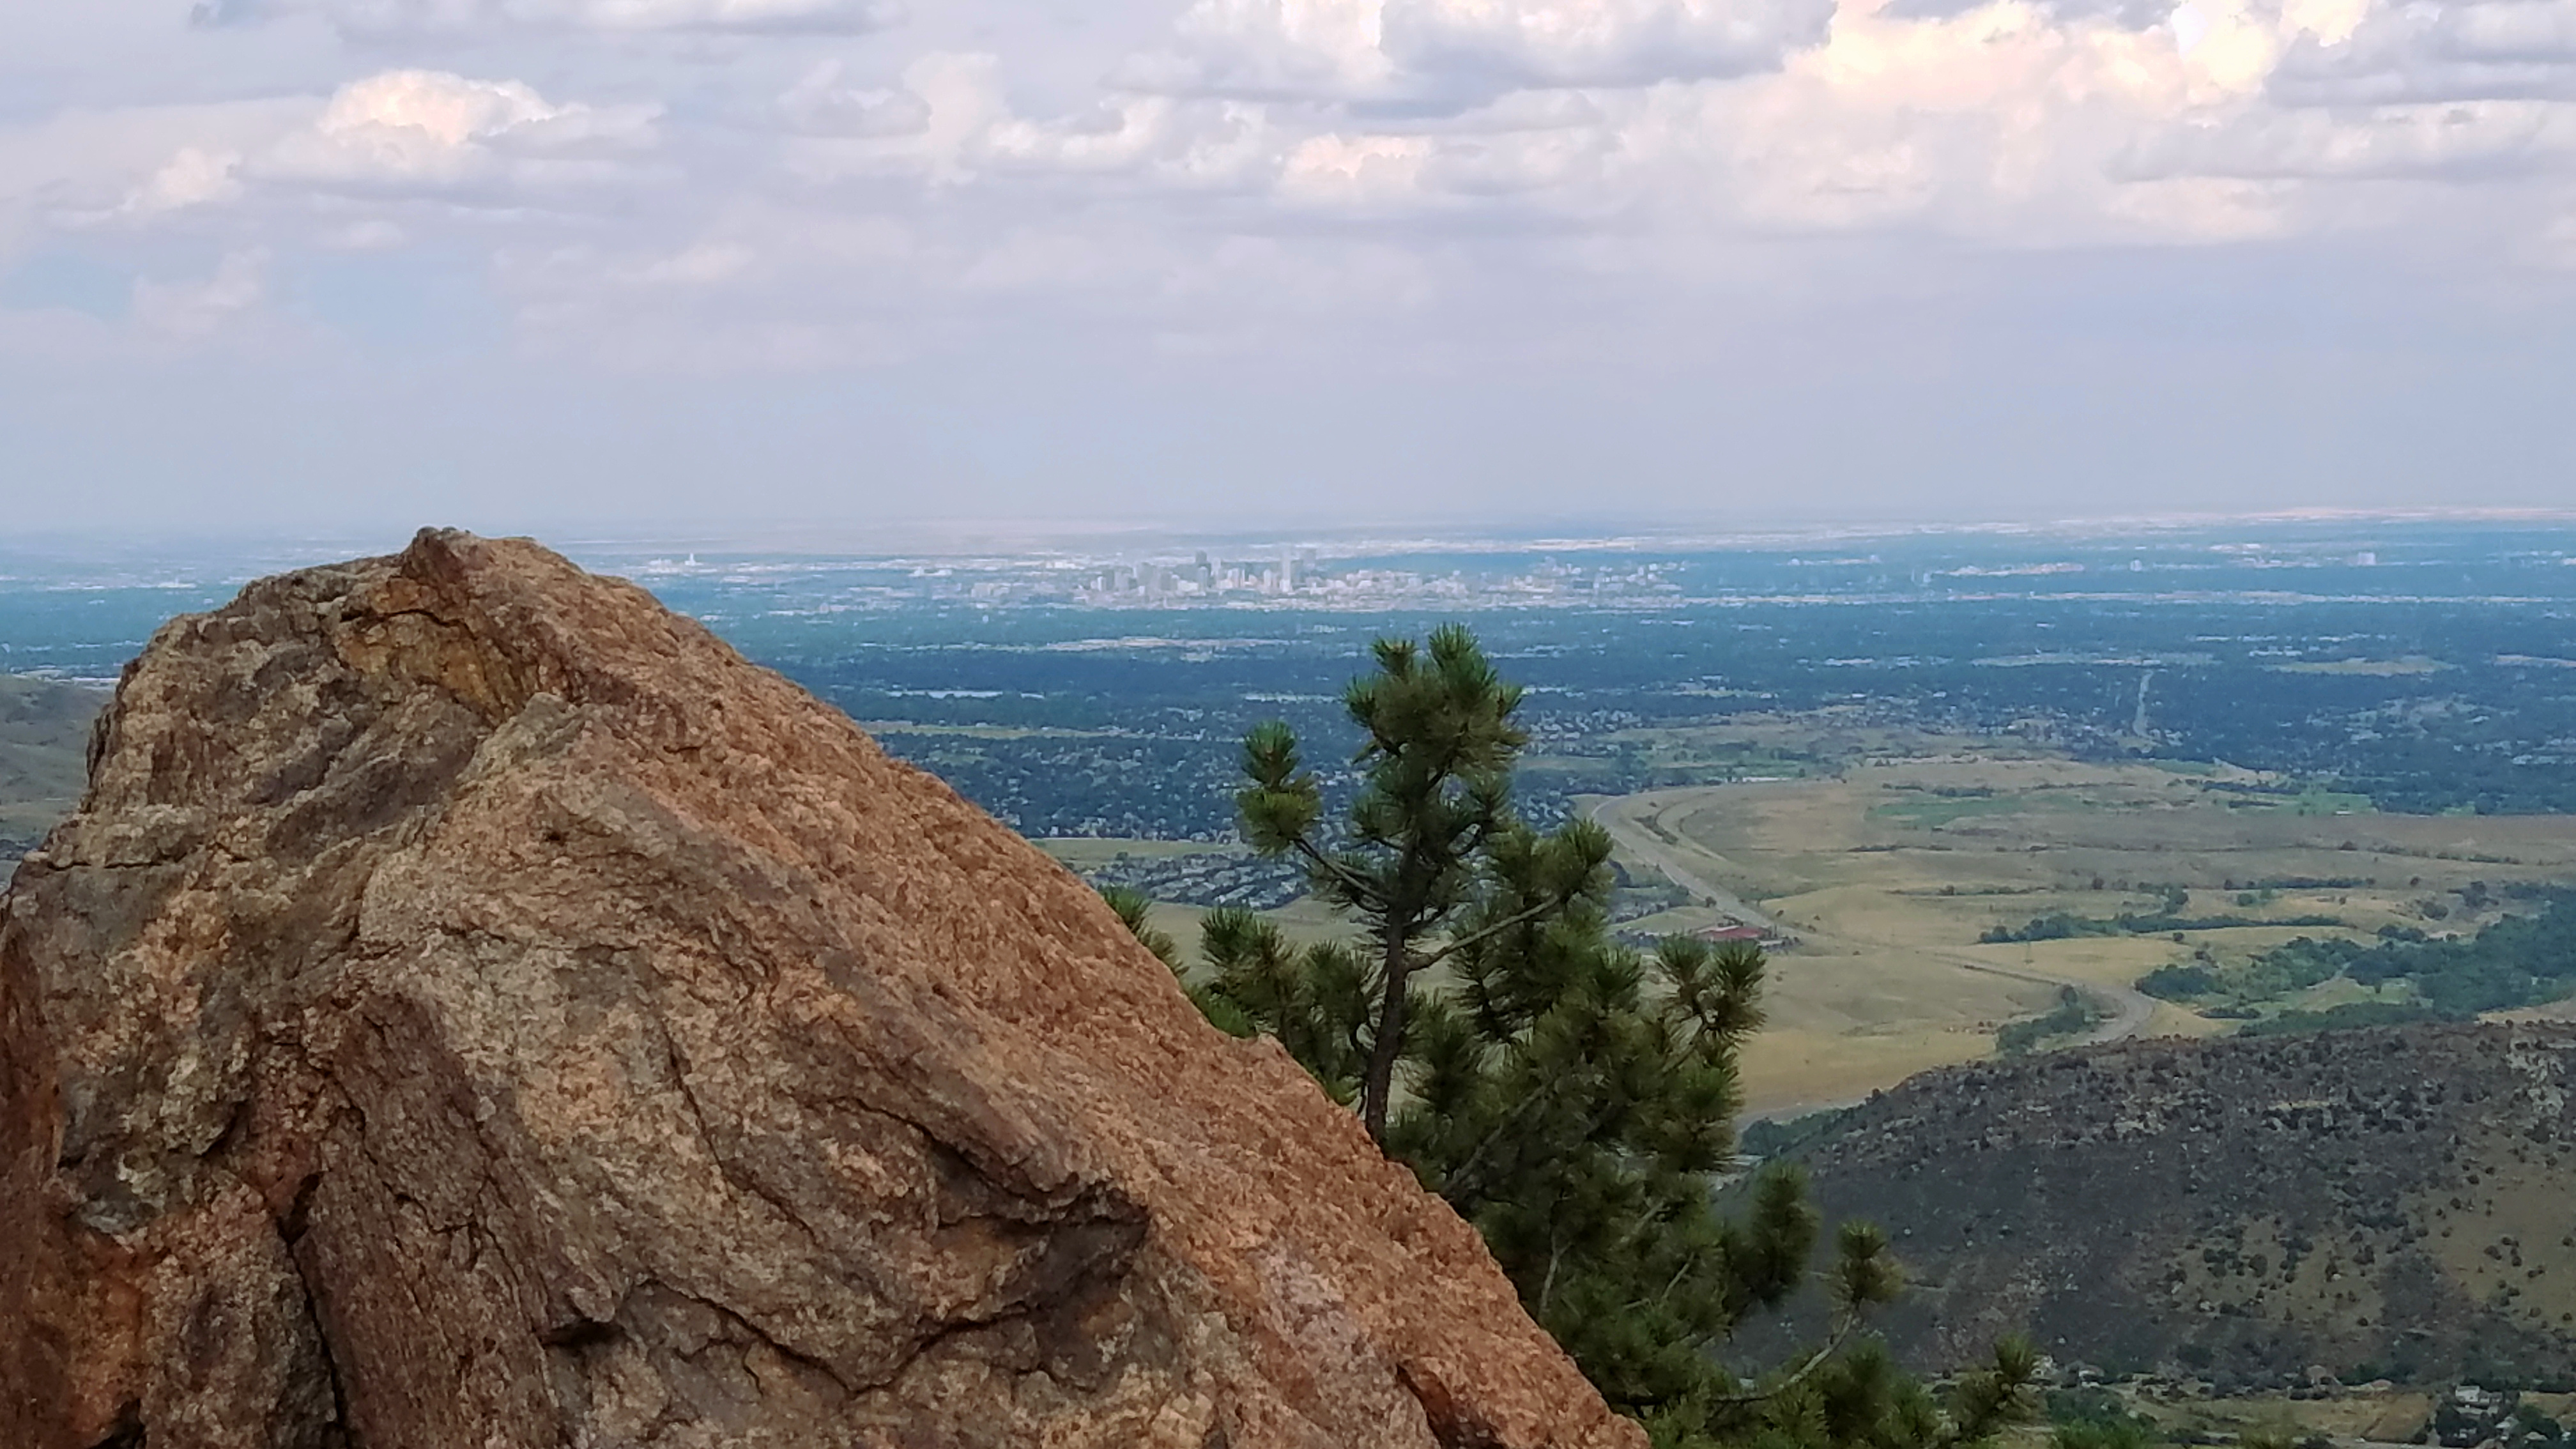 Views of Denver from a rocky perch in Mount Falcon Park